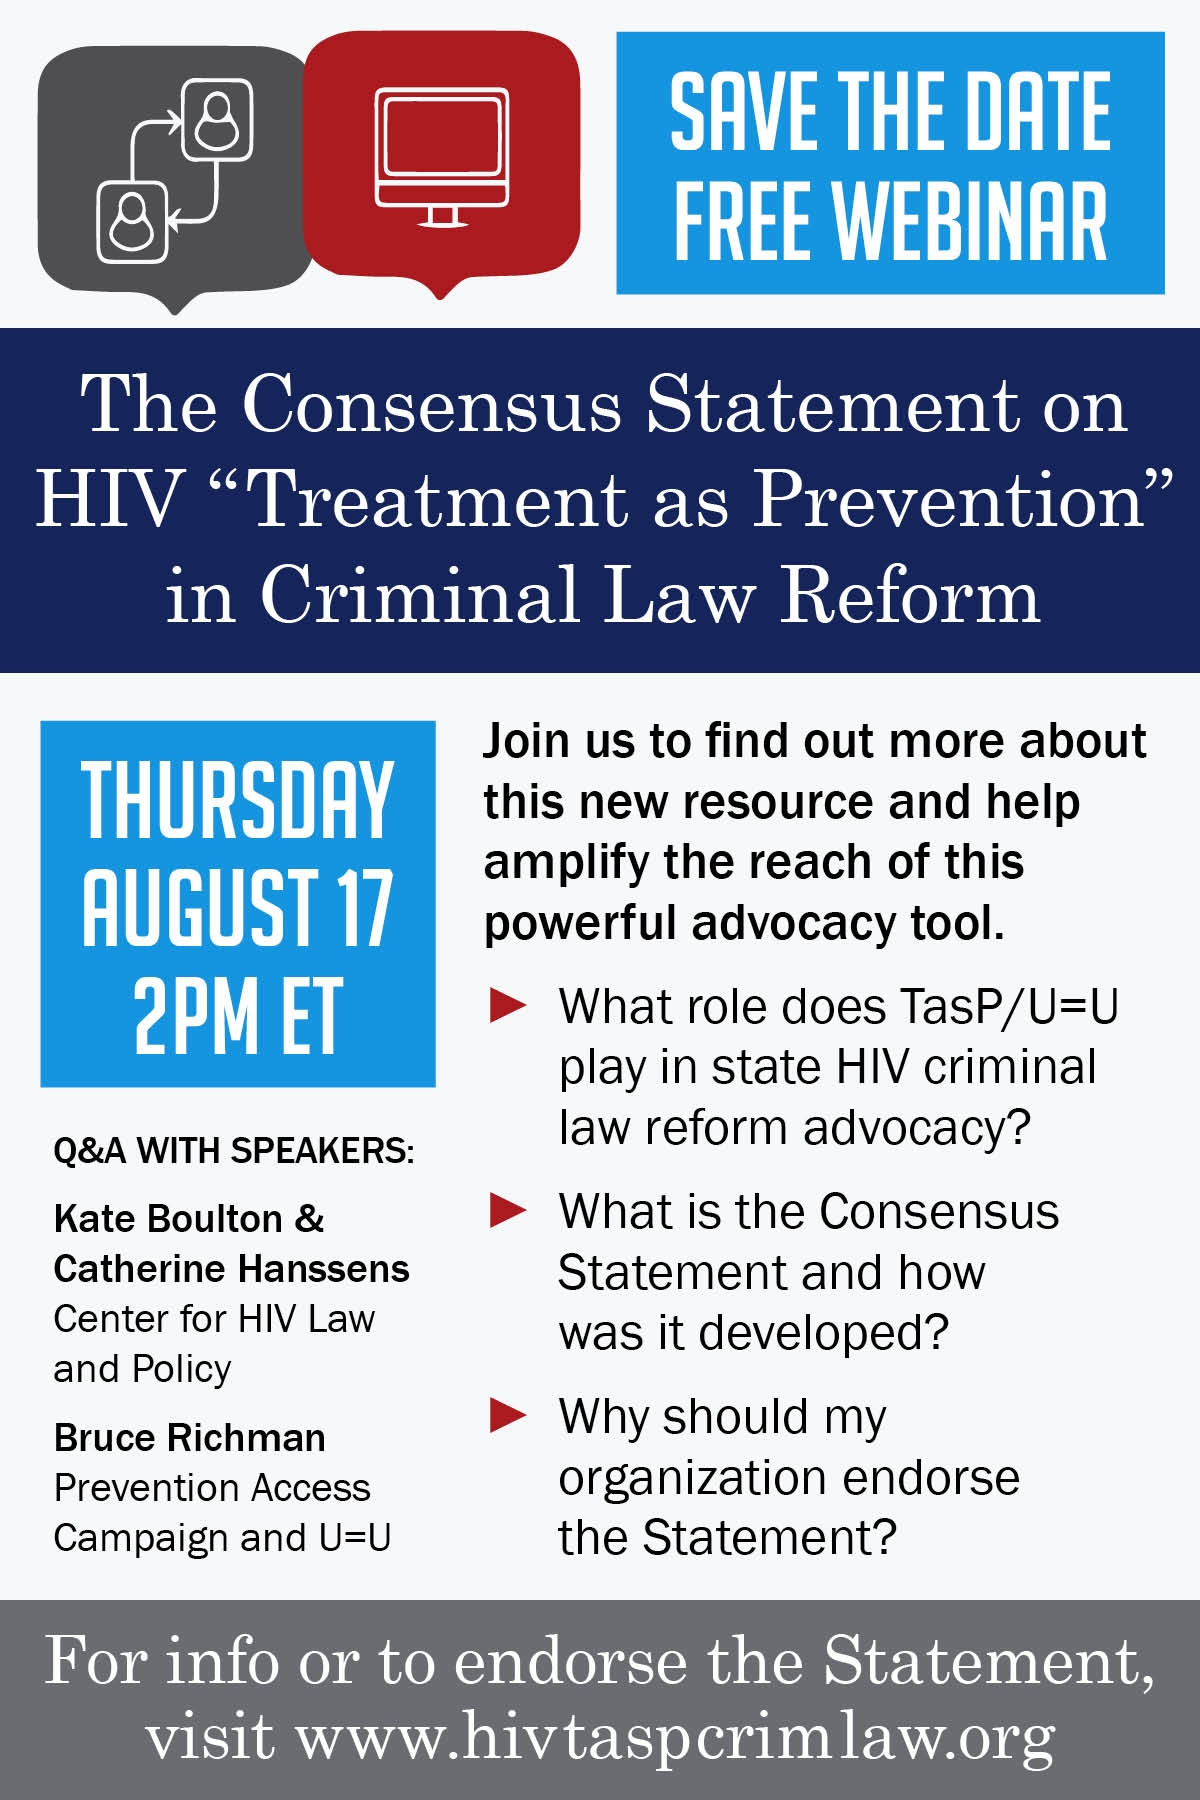 Watch now. - Thanks to all those that attended the webinar on the Consensus Statement on TasP in HIV Criminal Law Reform. Please watch and listen here:CLICK HERE FOR WEBINAR AUDIO + SLIDESCLICK HERE FOR WEBINAR AUDIO ONLY